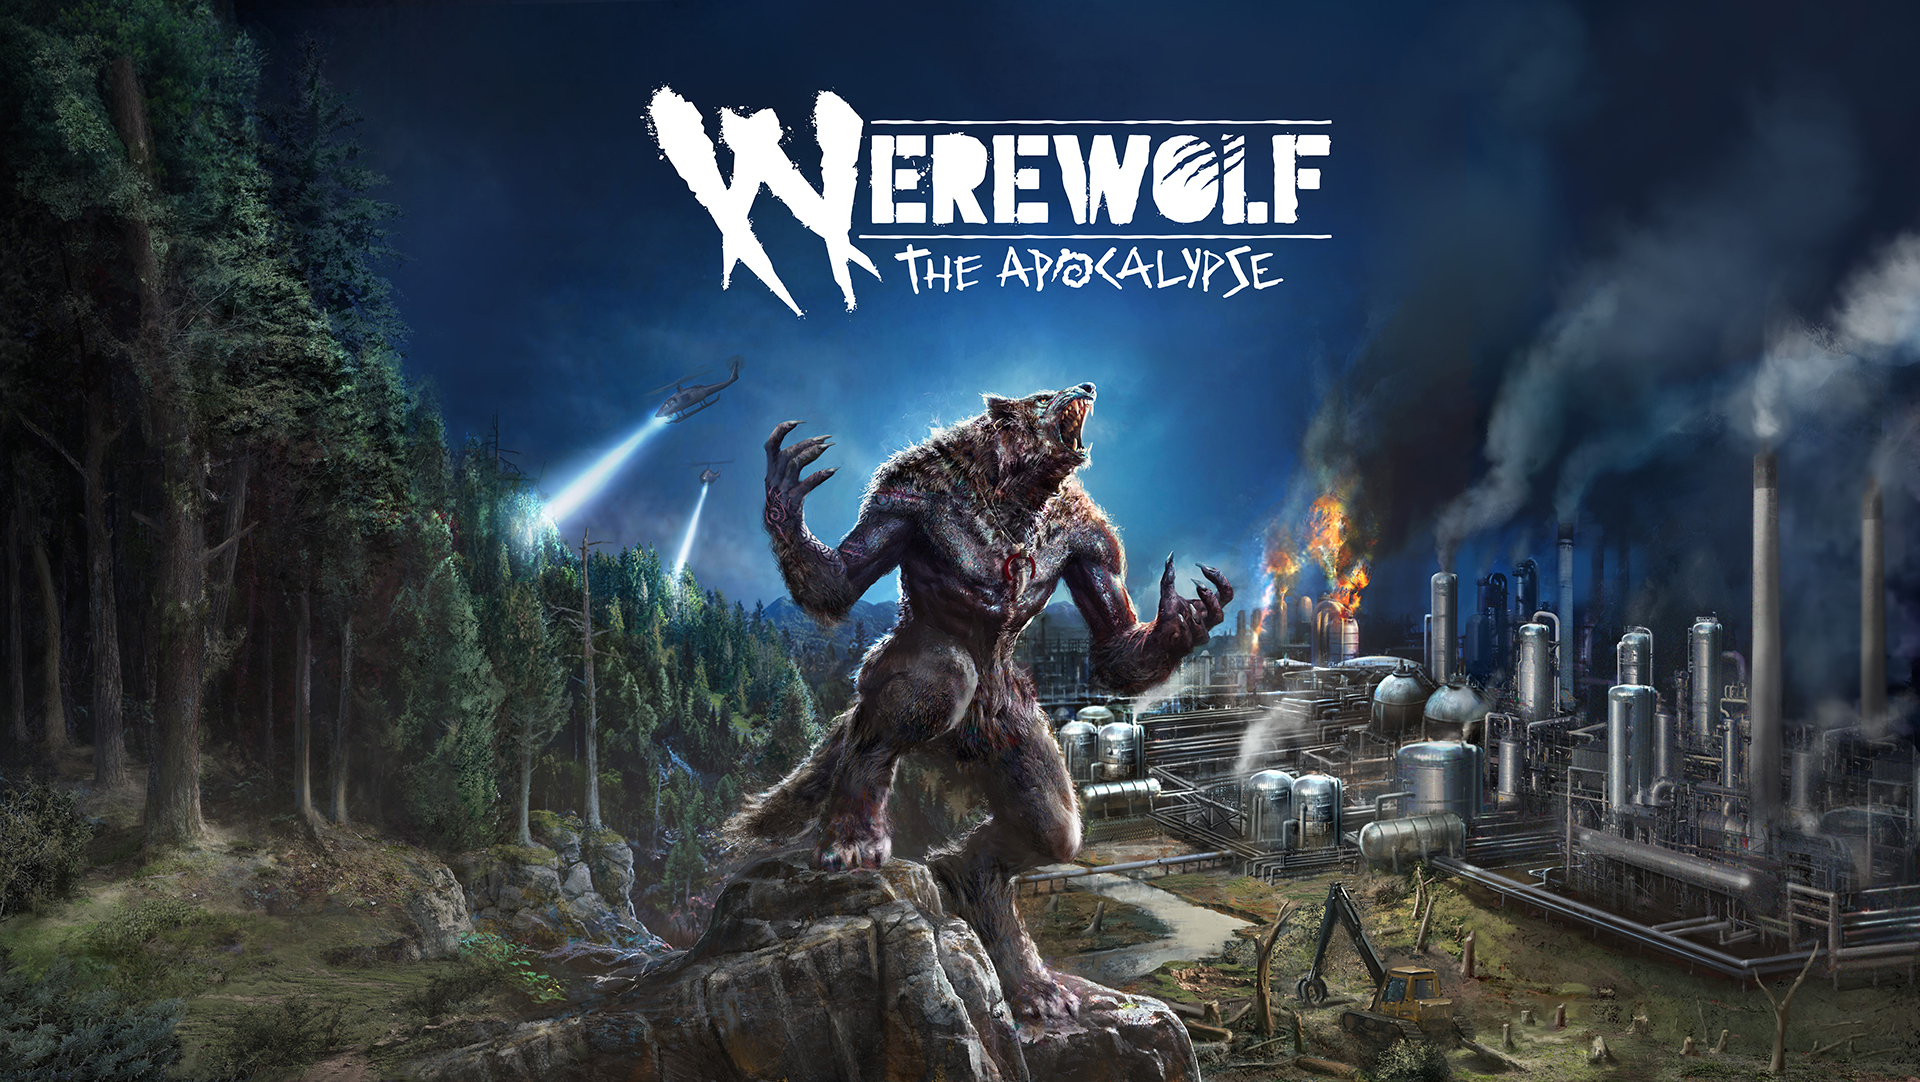 3djuegos.com - Werewolf: The Apocalypse Wallpaper - 1920x1082